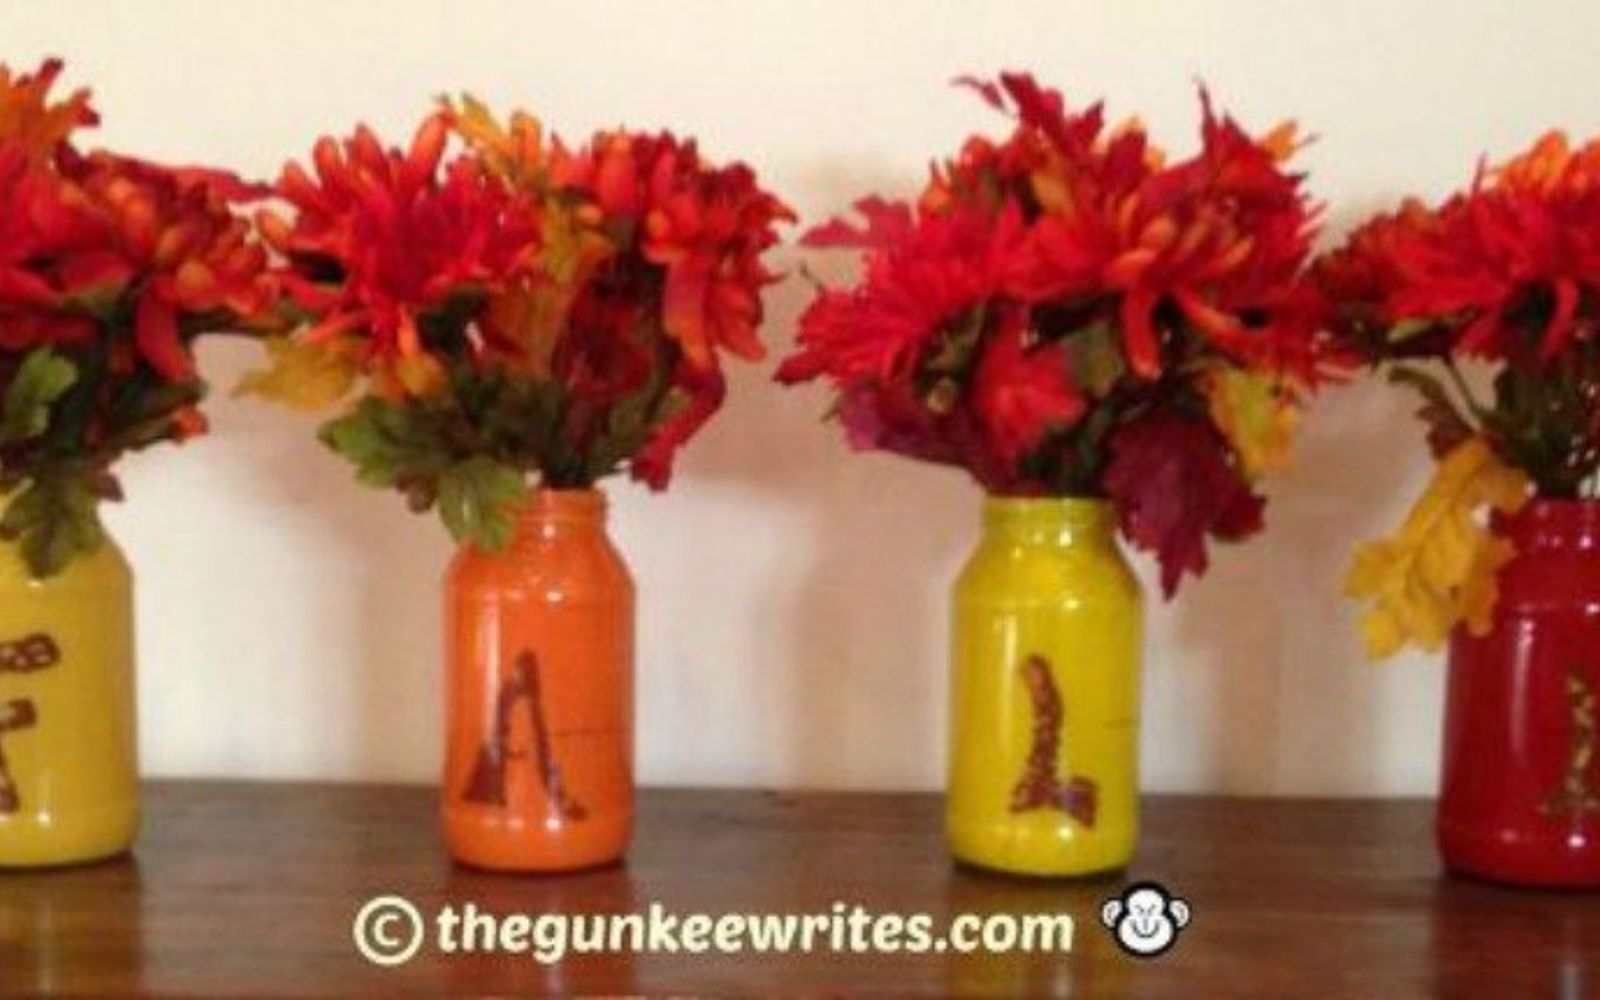 s why everyone is buying artificial flowers for the holidays, gardening, They look fabulous as fall decor